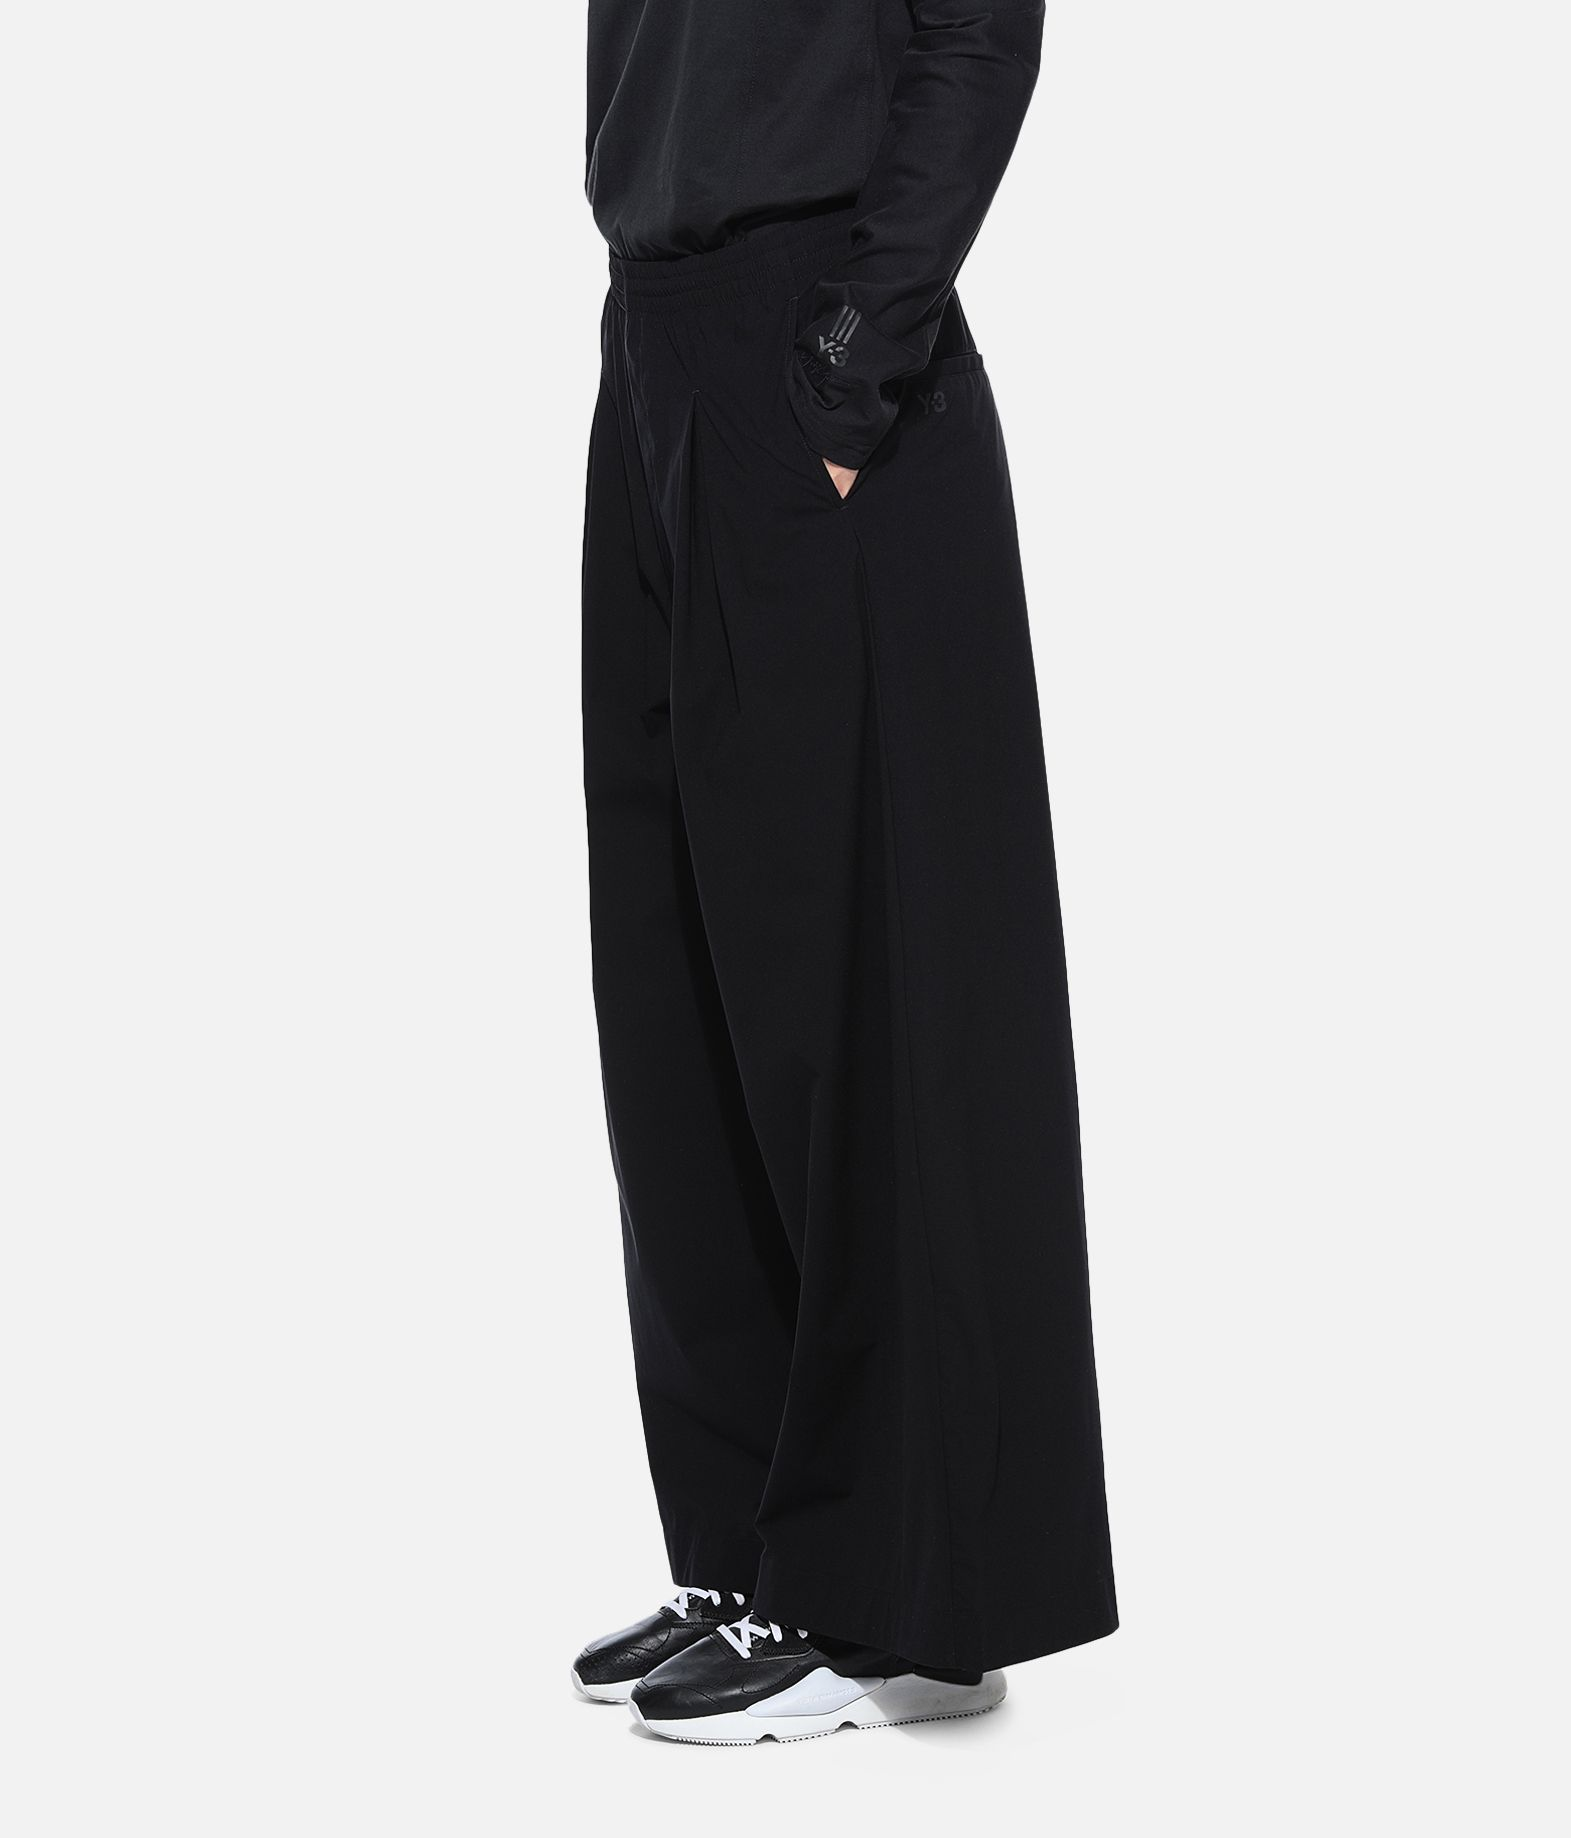 Y-3 Y-3 Light Wide Pants Casual pants Woman e